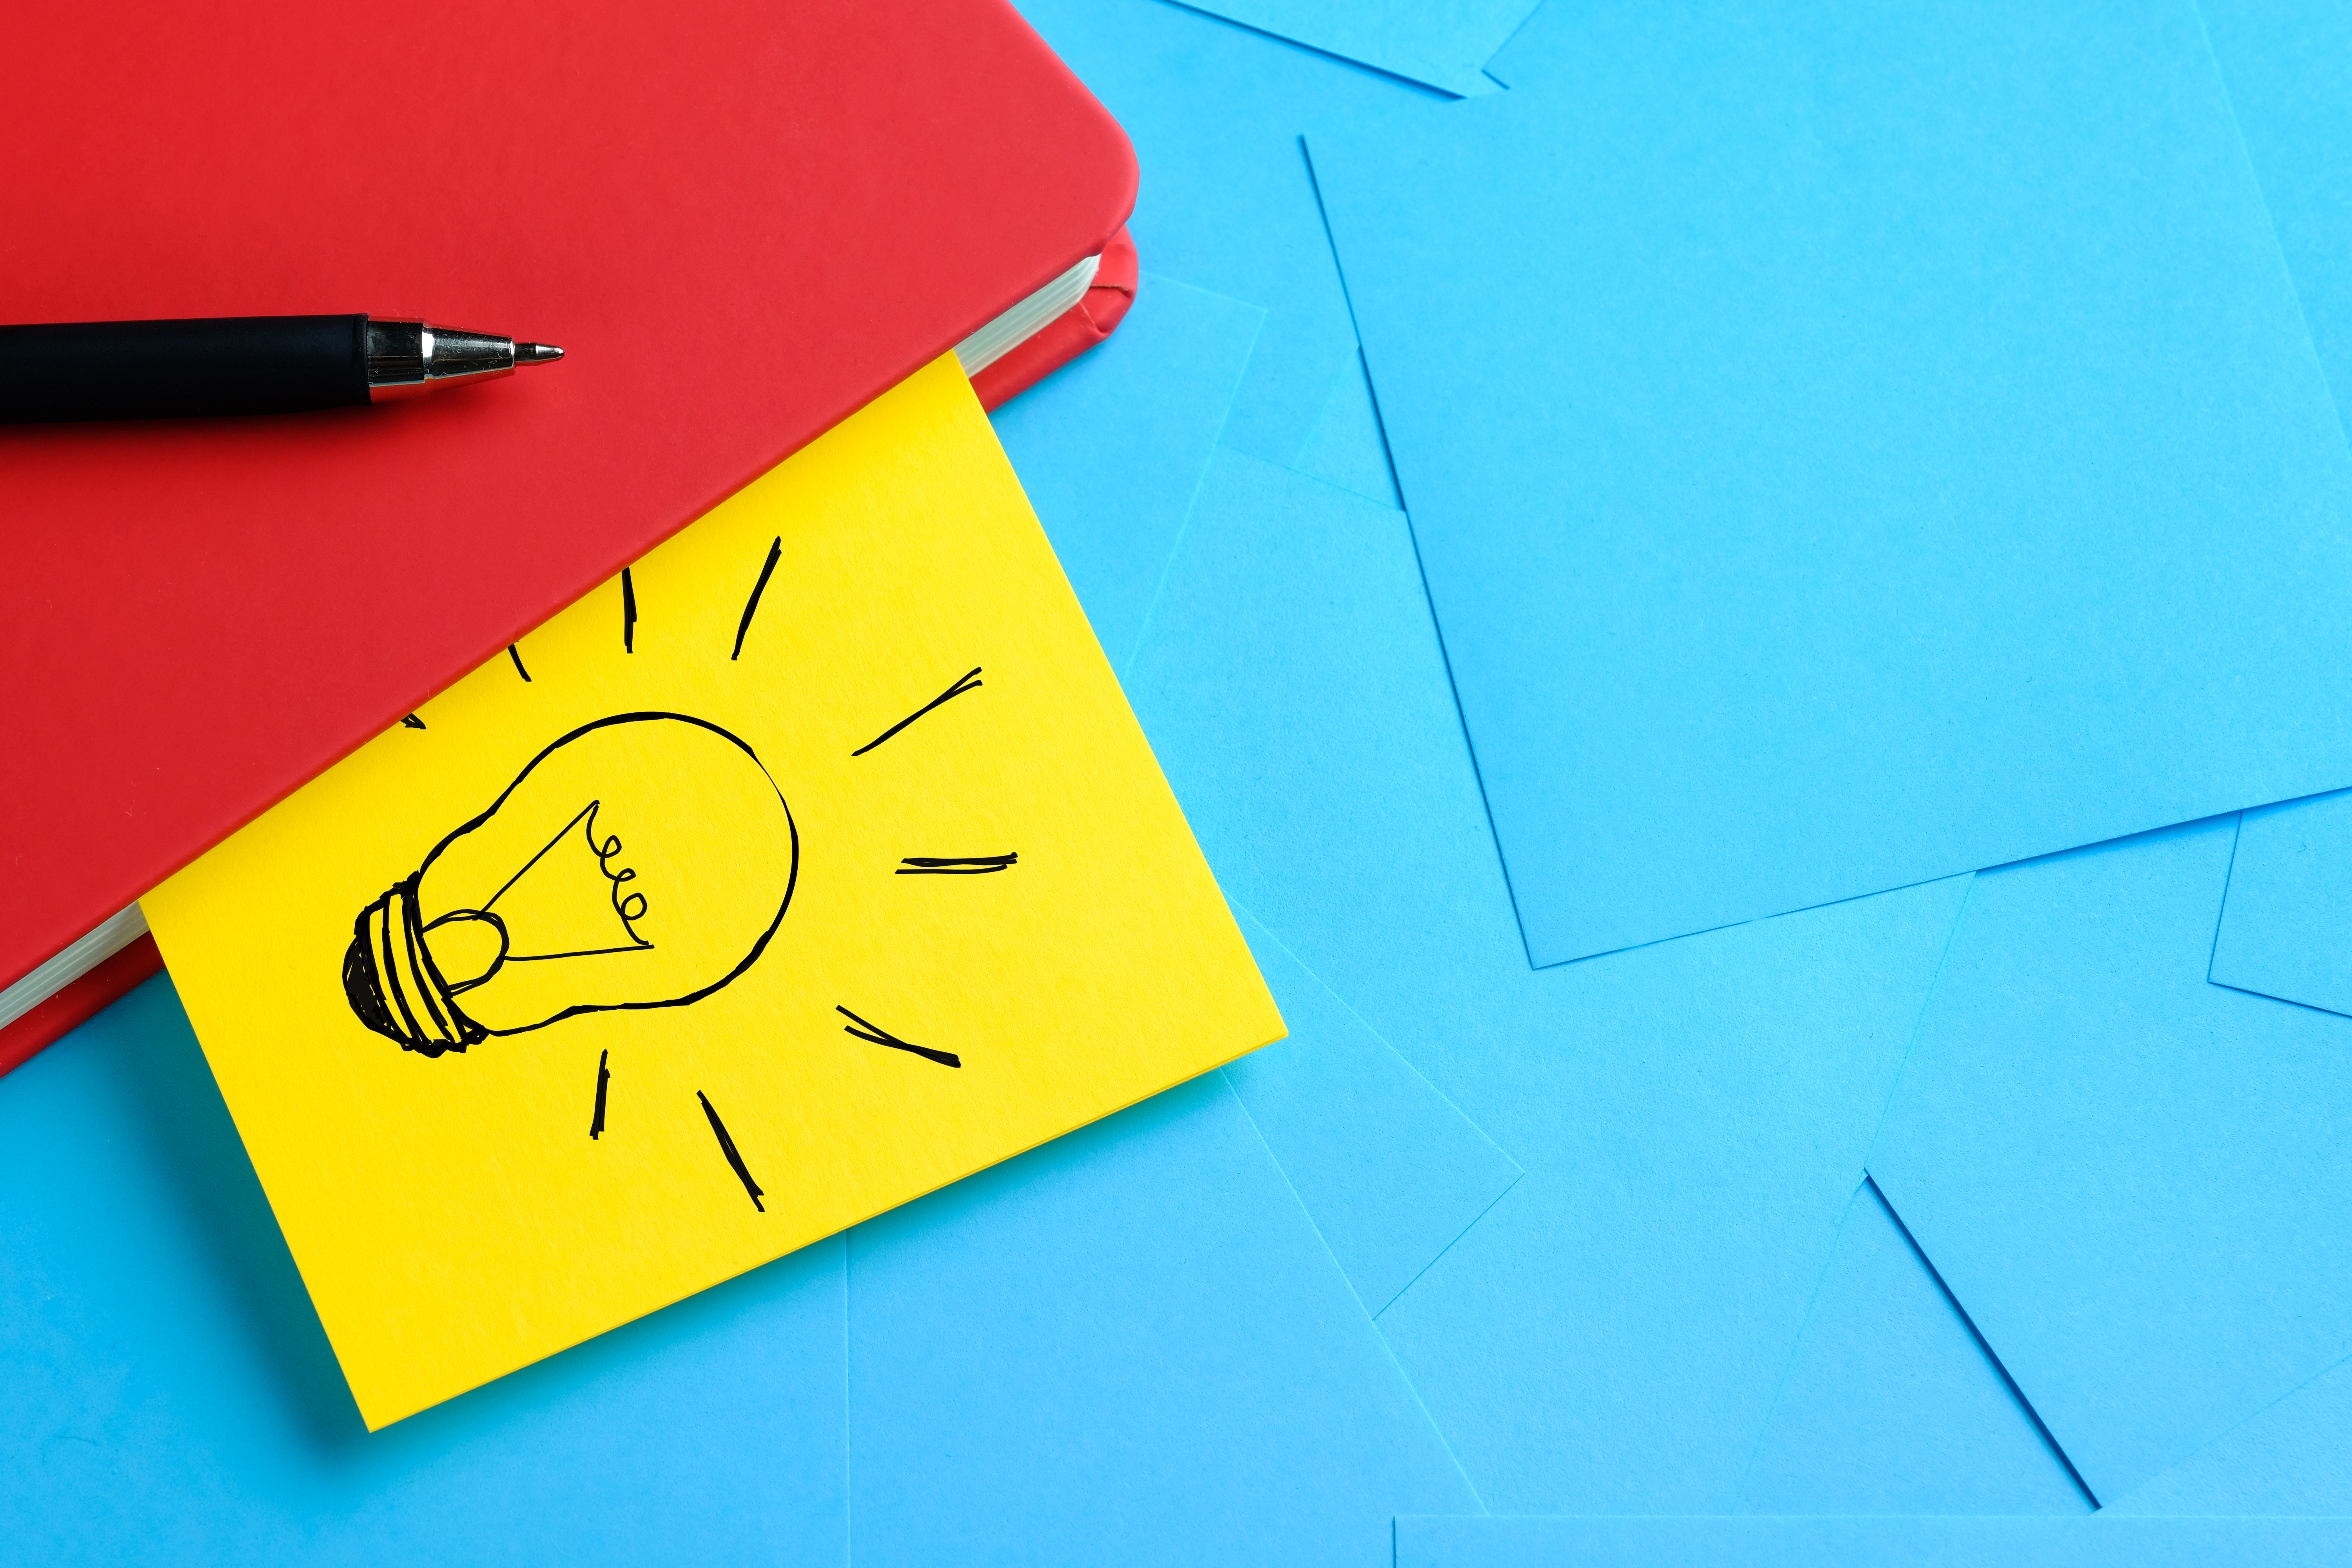 creative-drawing-light-bulb-yellow-sticker-attached-red-notepad-there-s-pen-it-concept-new-ideas-innovations-solutions-problems